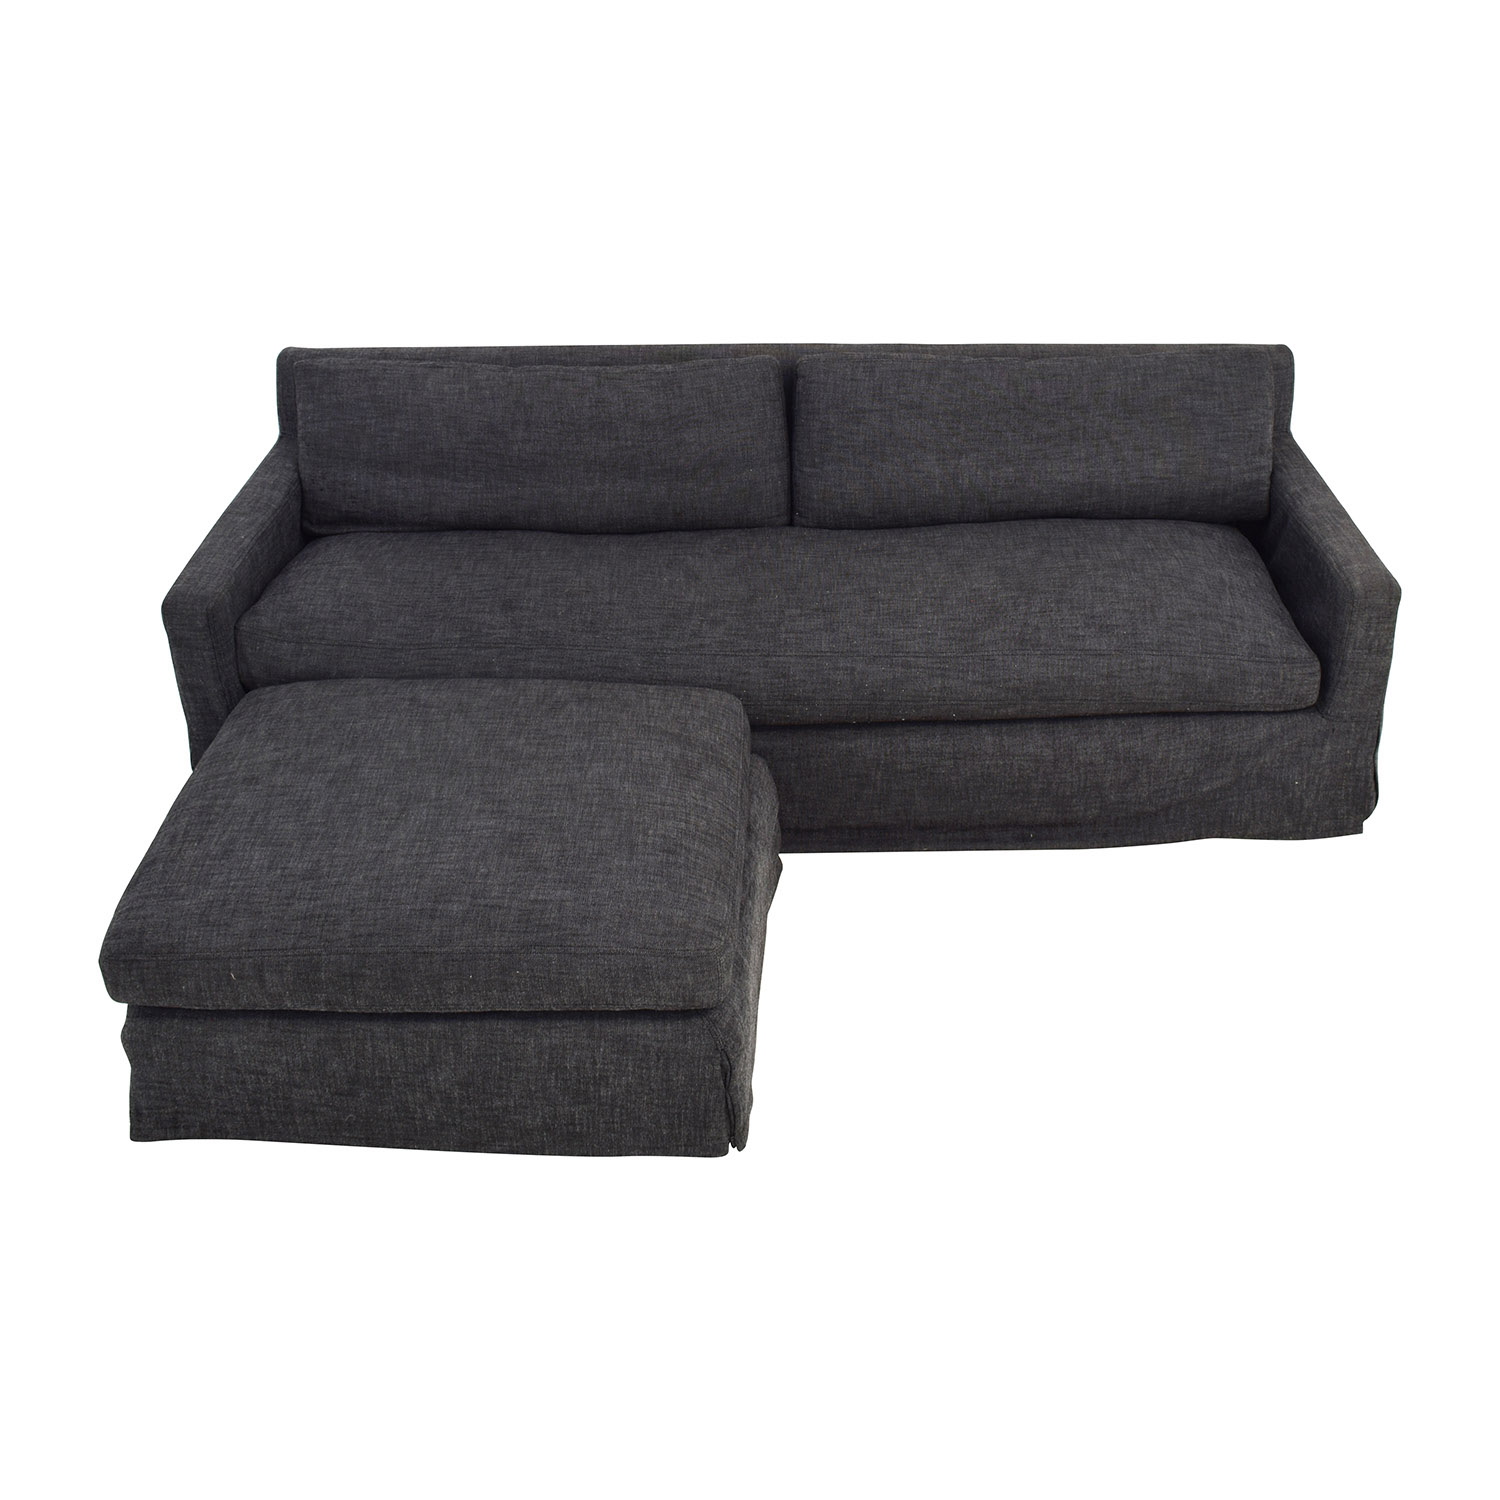 Restoration Hardware Restoration Hardware Belgian Track Arm Slipcover Sofa with Ottoman price